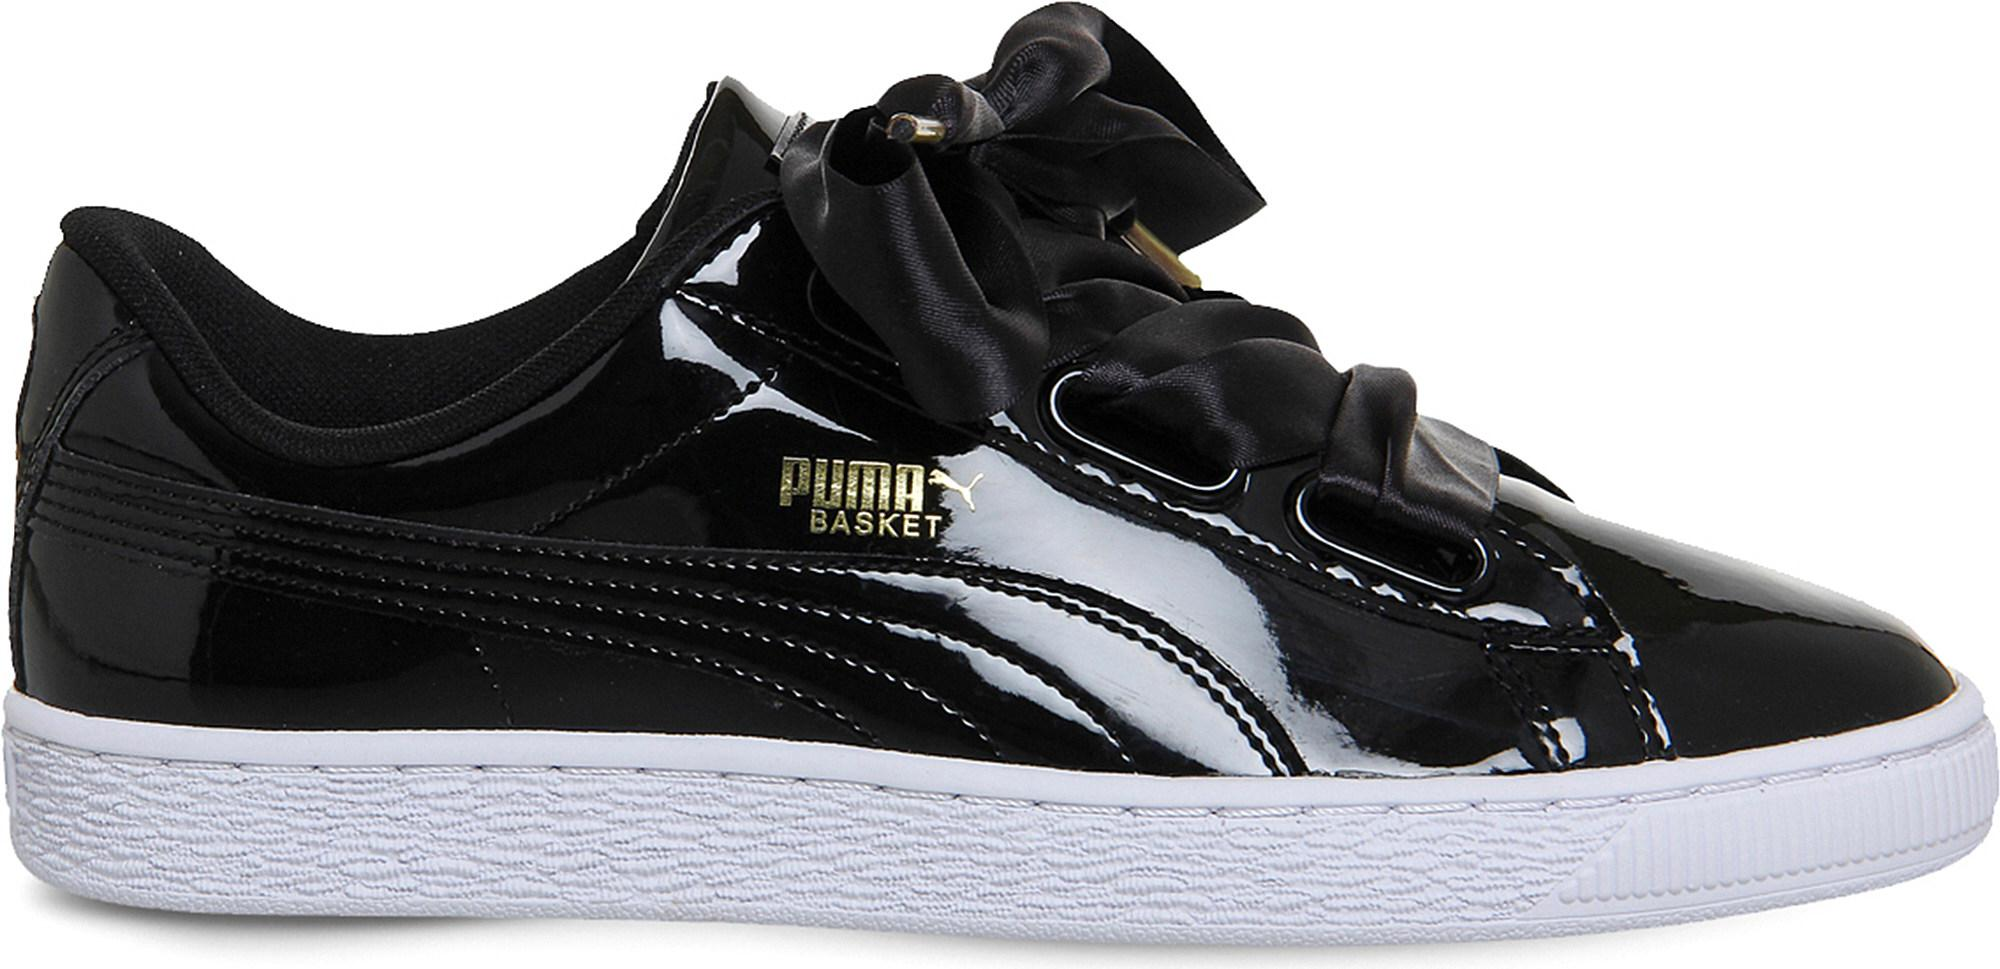 8a9ba3018ccef0 Lyst - PUMA Basket Heart Patent-leather Trainers in Black